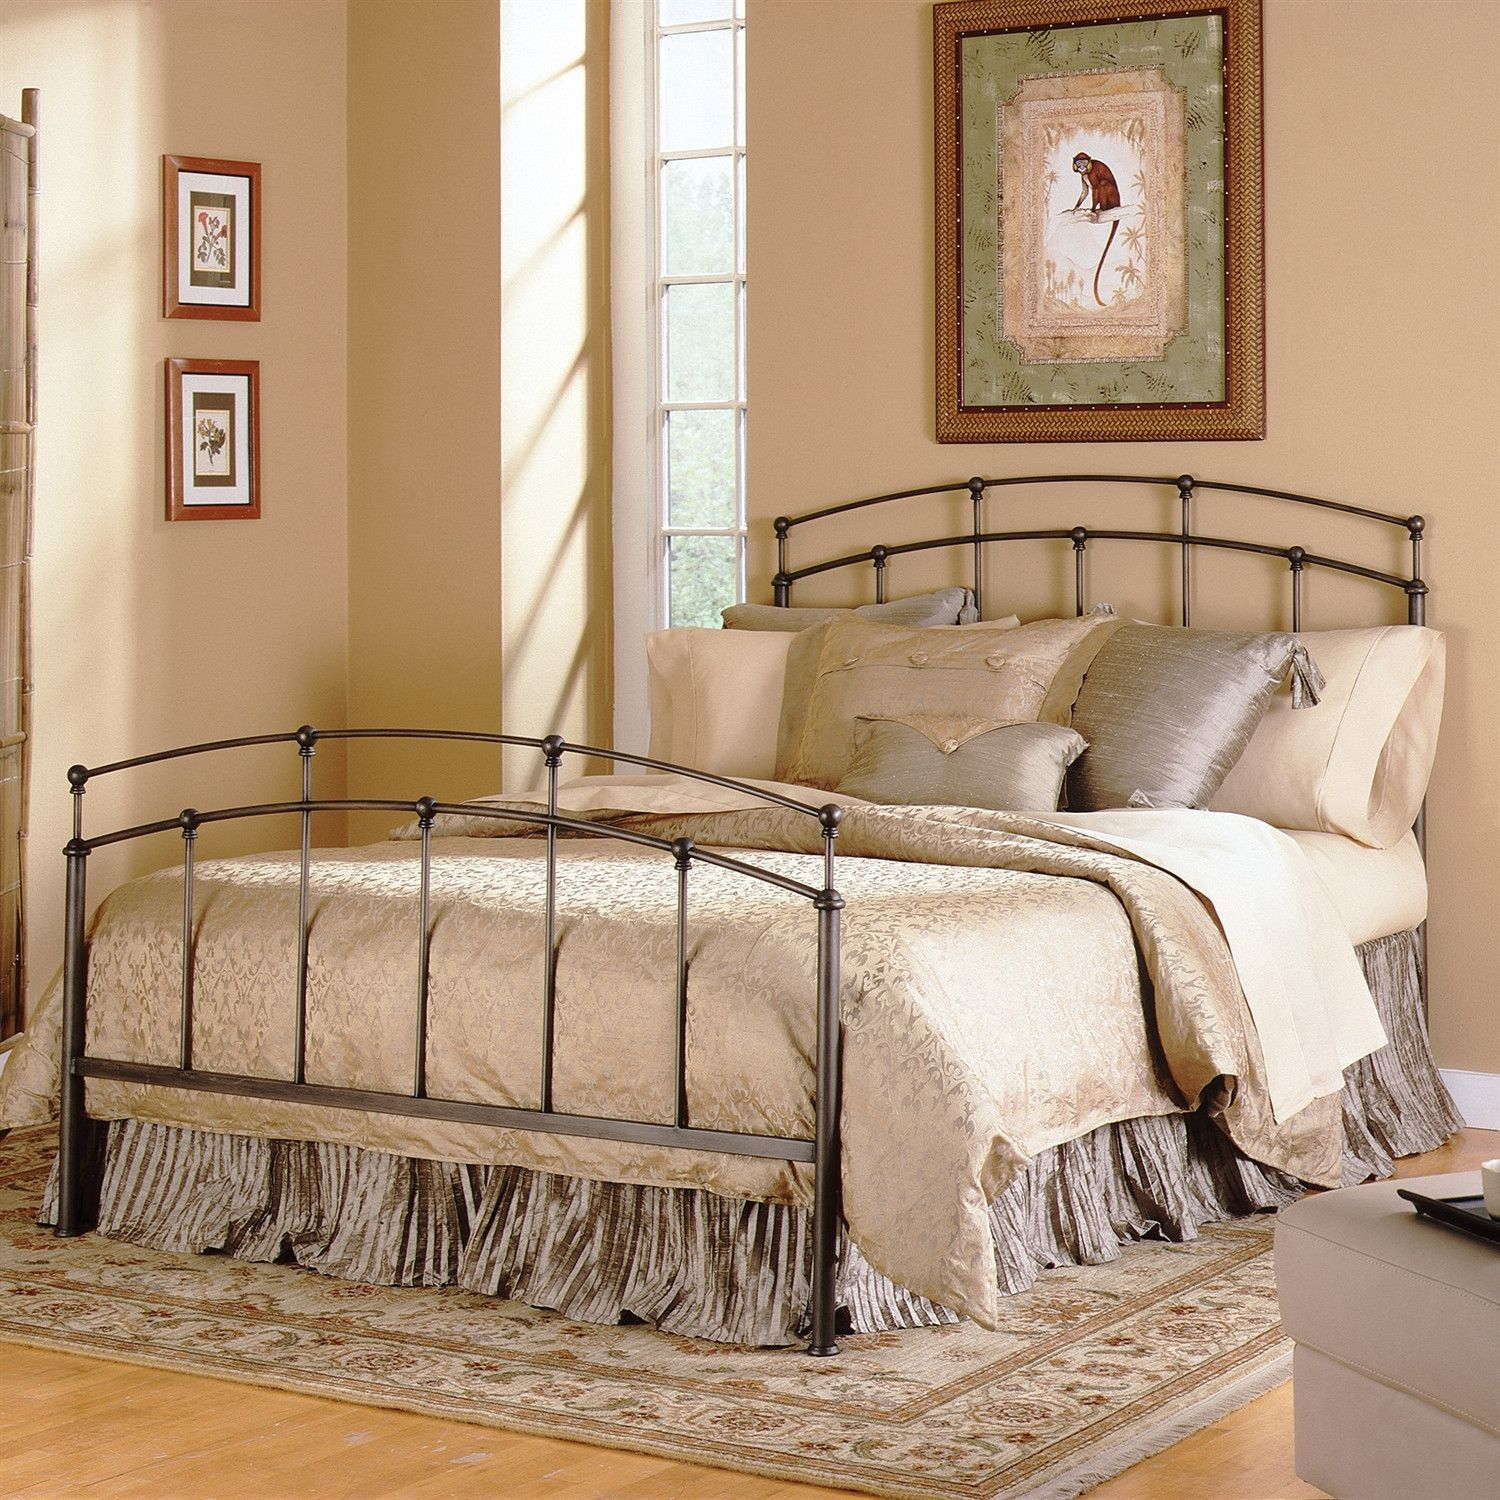 Best Queen Size Metal Bed With Headboard And Footboard In Black 400 x 300